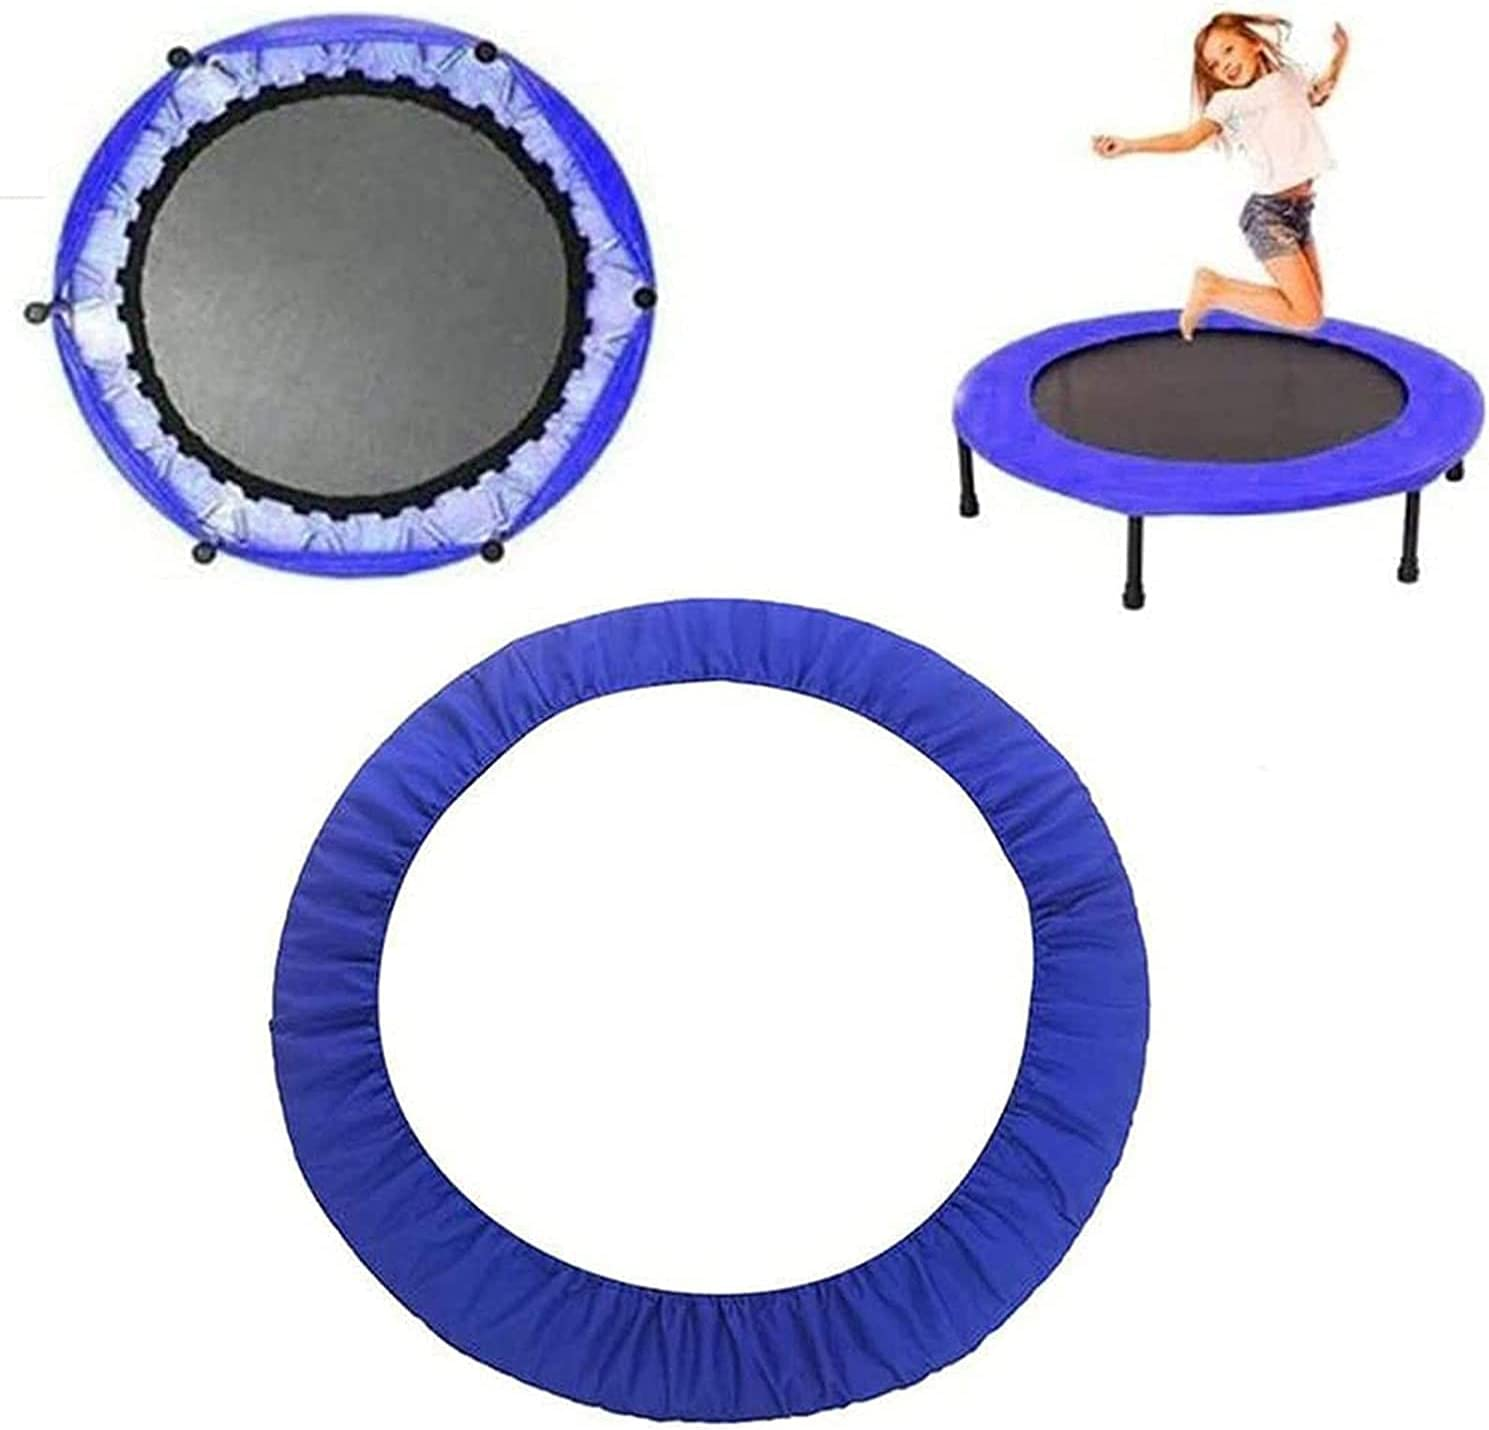 WSZYBAY Trampoline Max 81% OFF Replacement Safety Boston Mall Cover Edge Pad